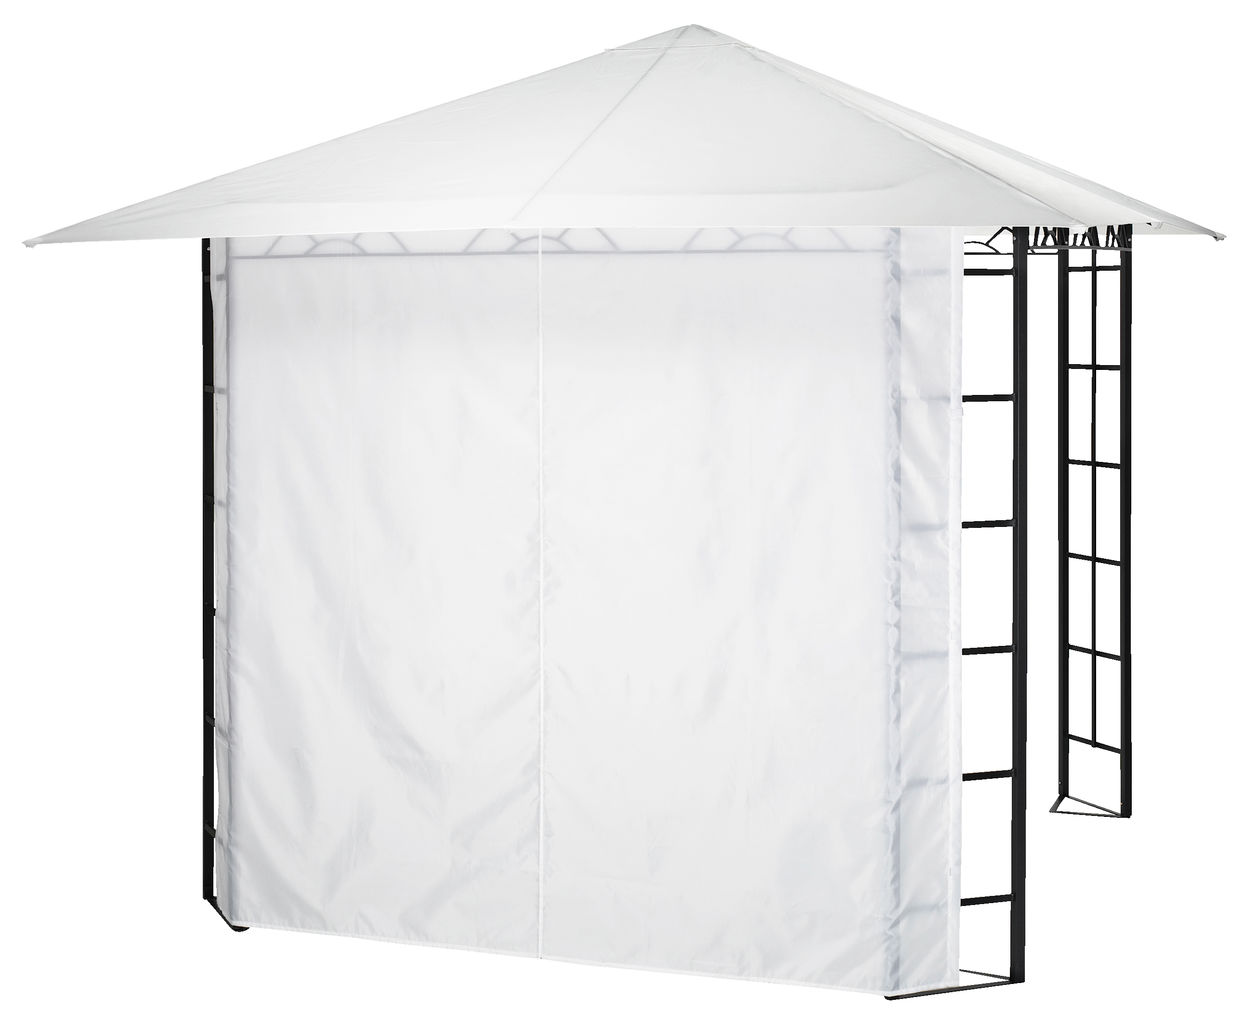 Jysk Tent Gazebo Side Faaborg White